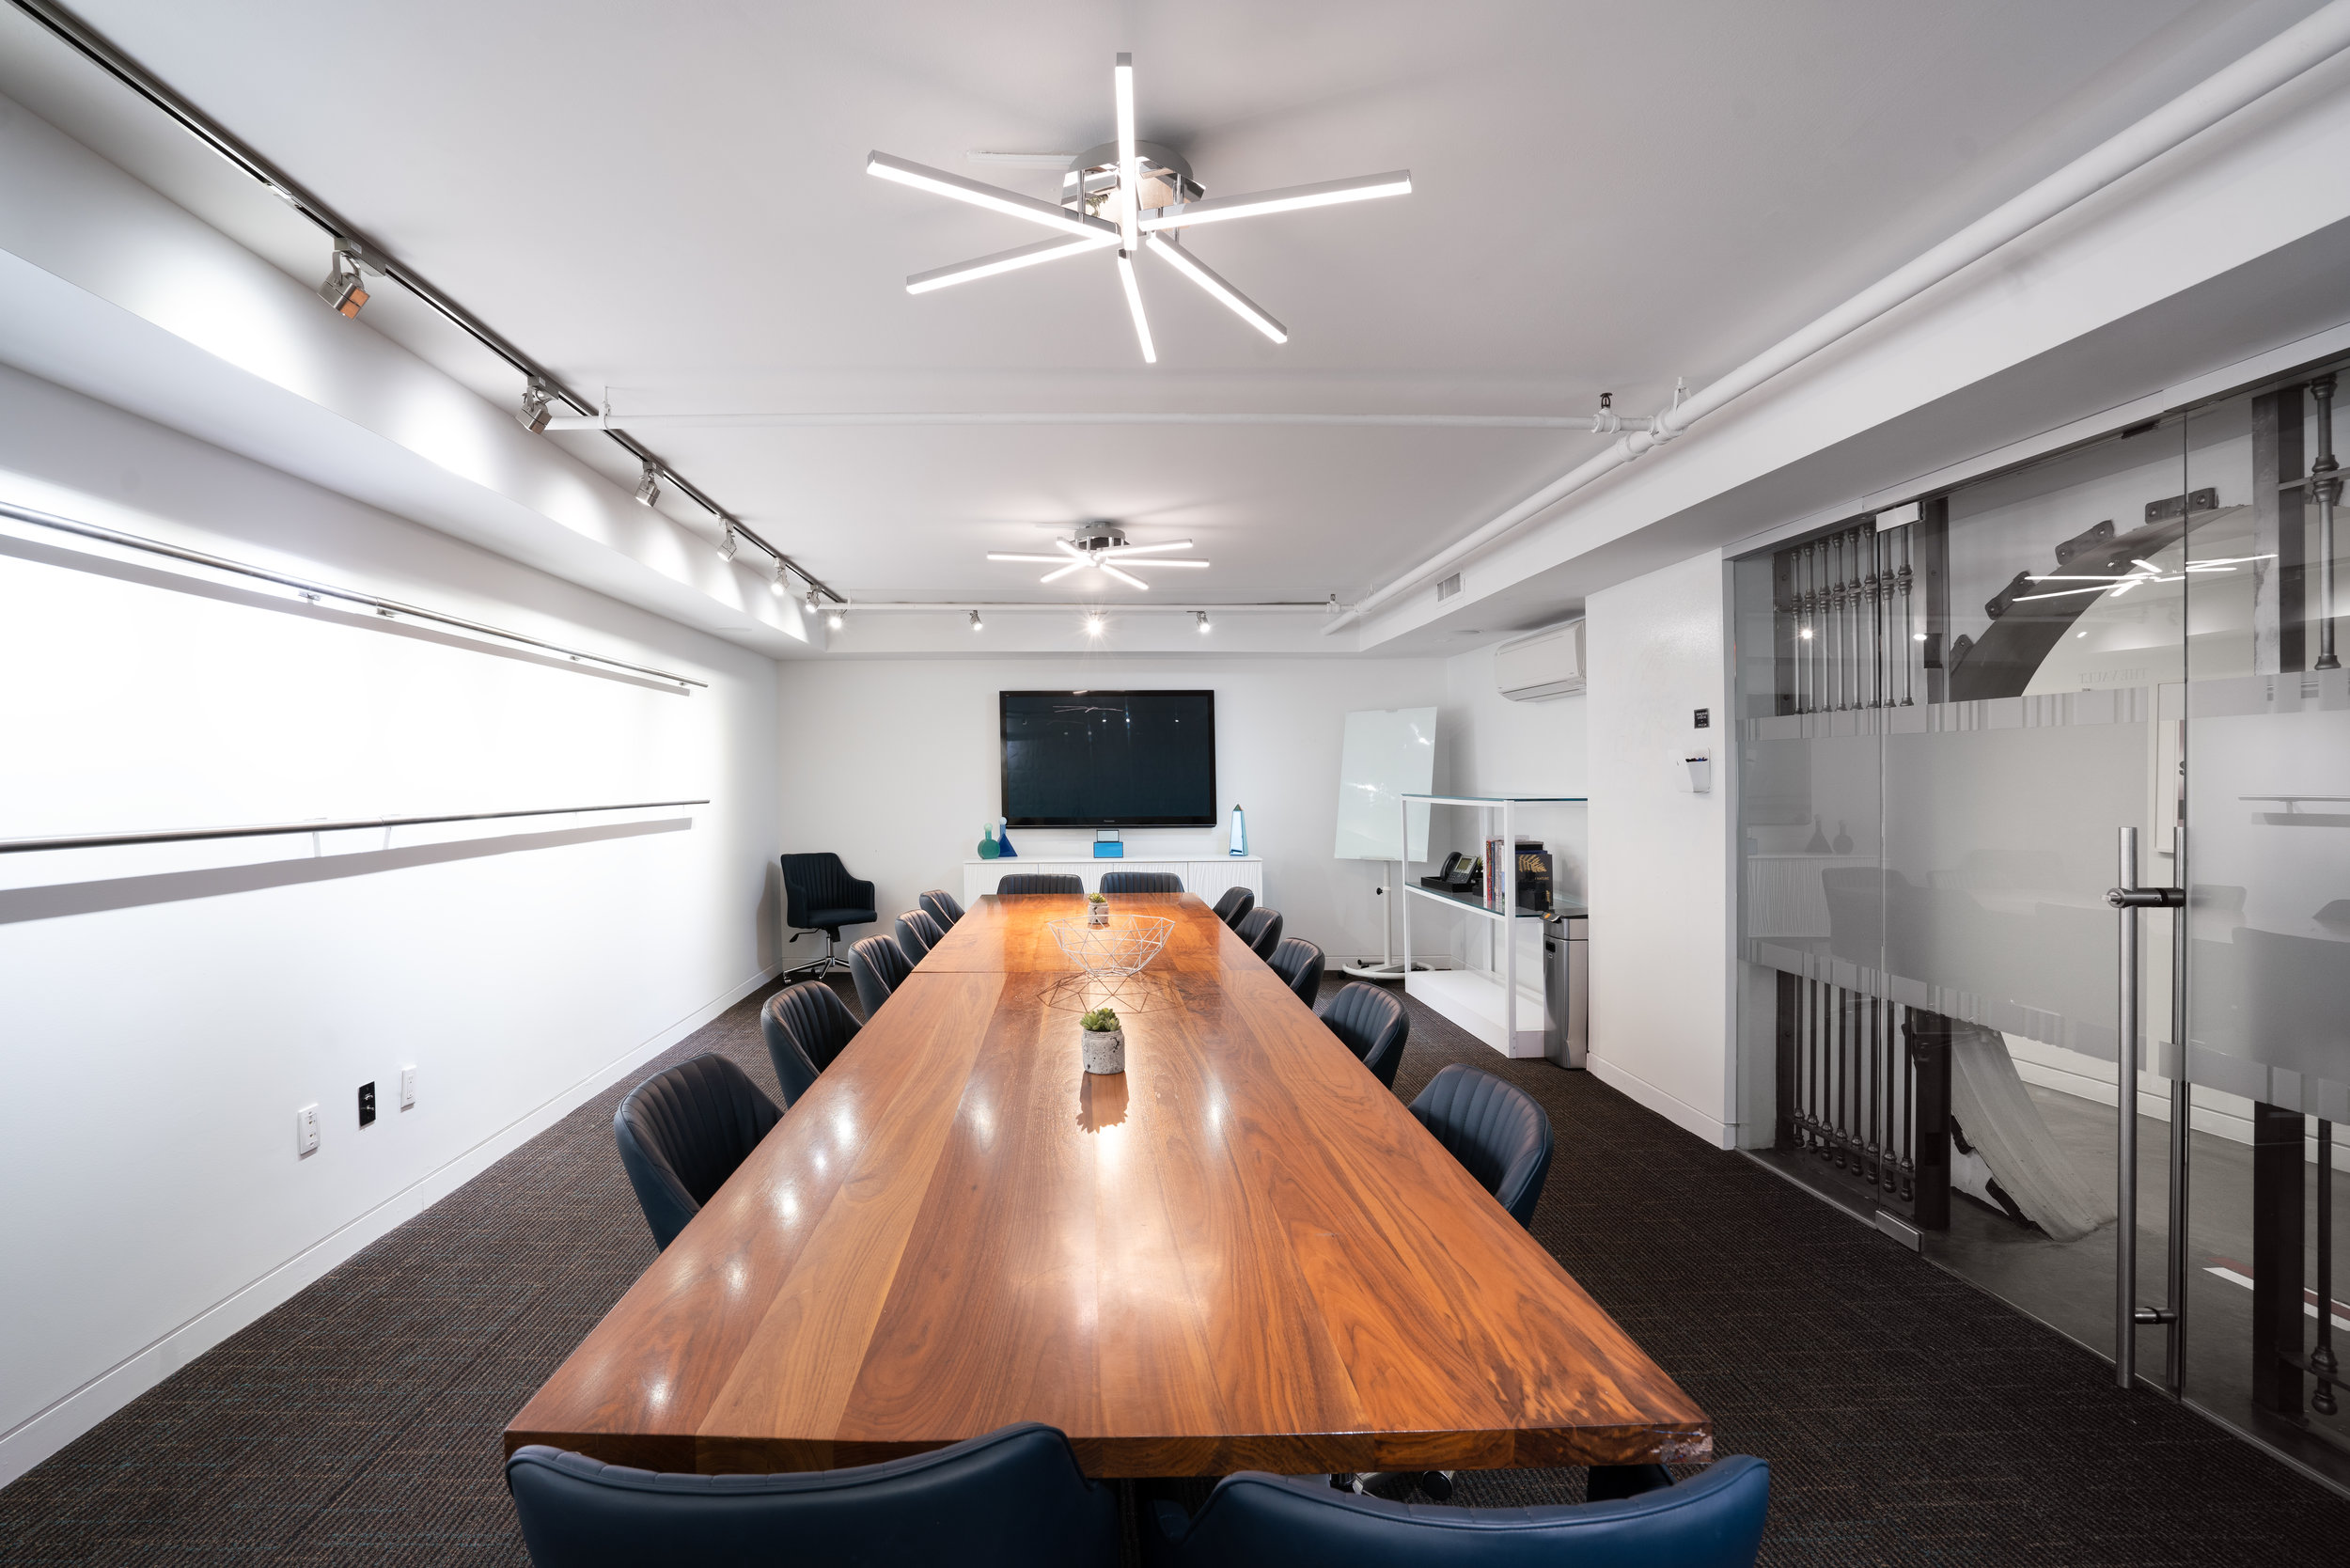 The Vault Conference Room Available for Hourly Booking at Space 530